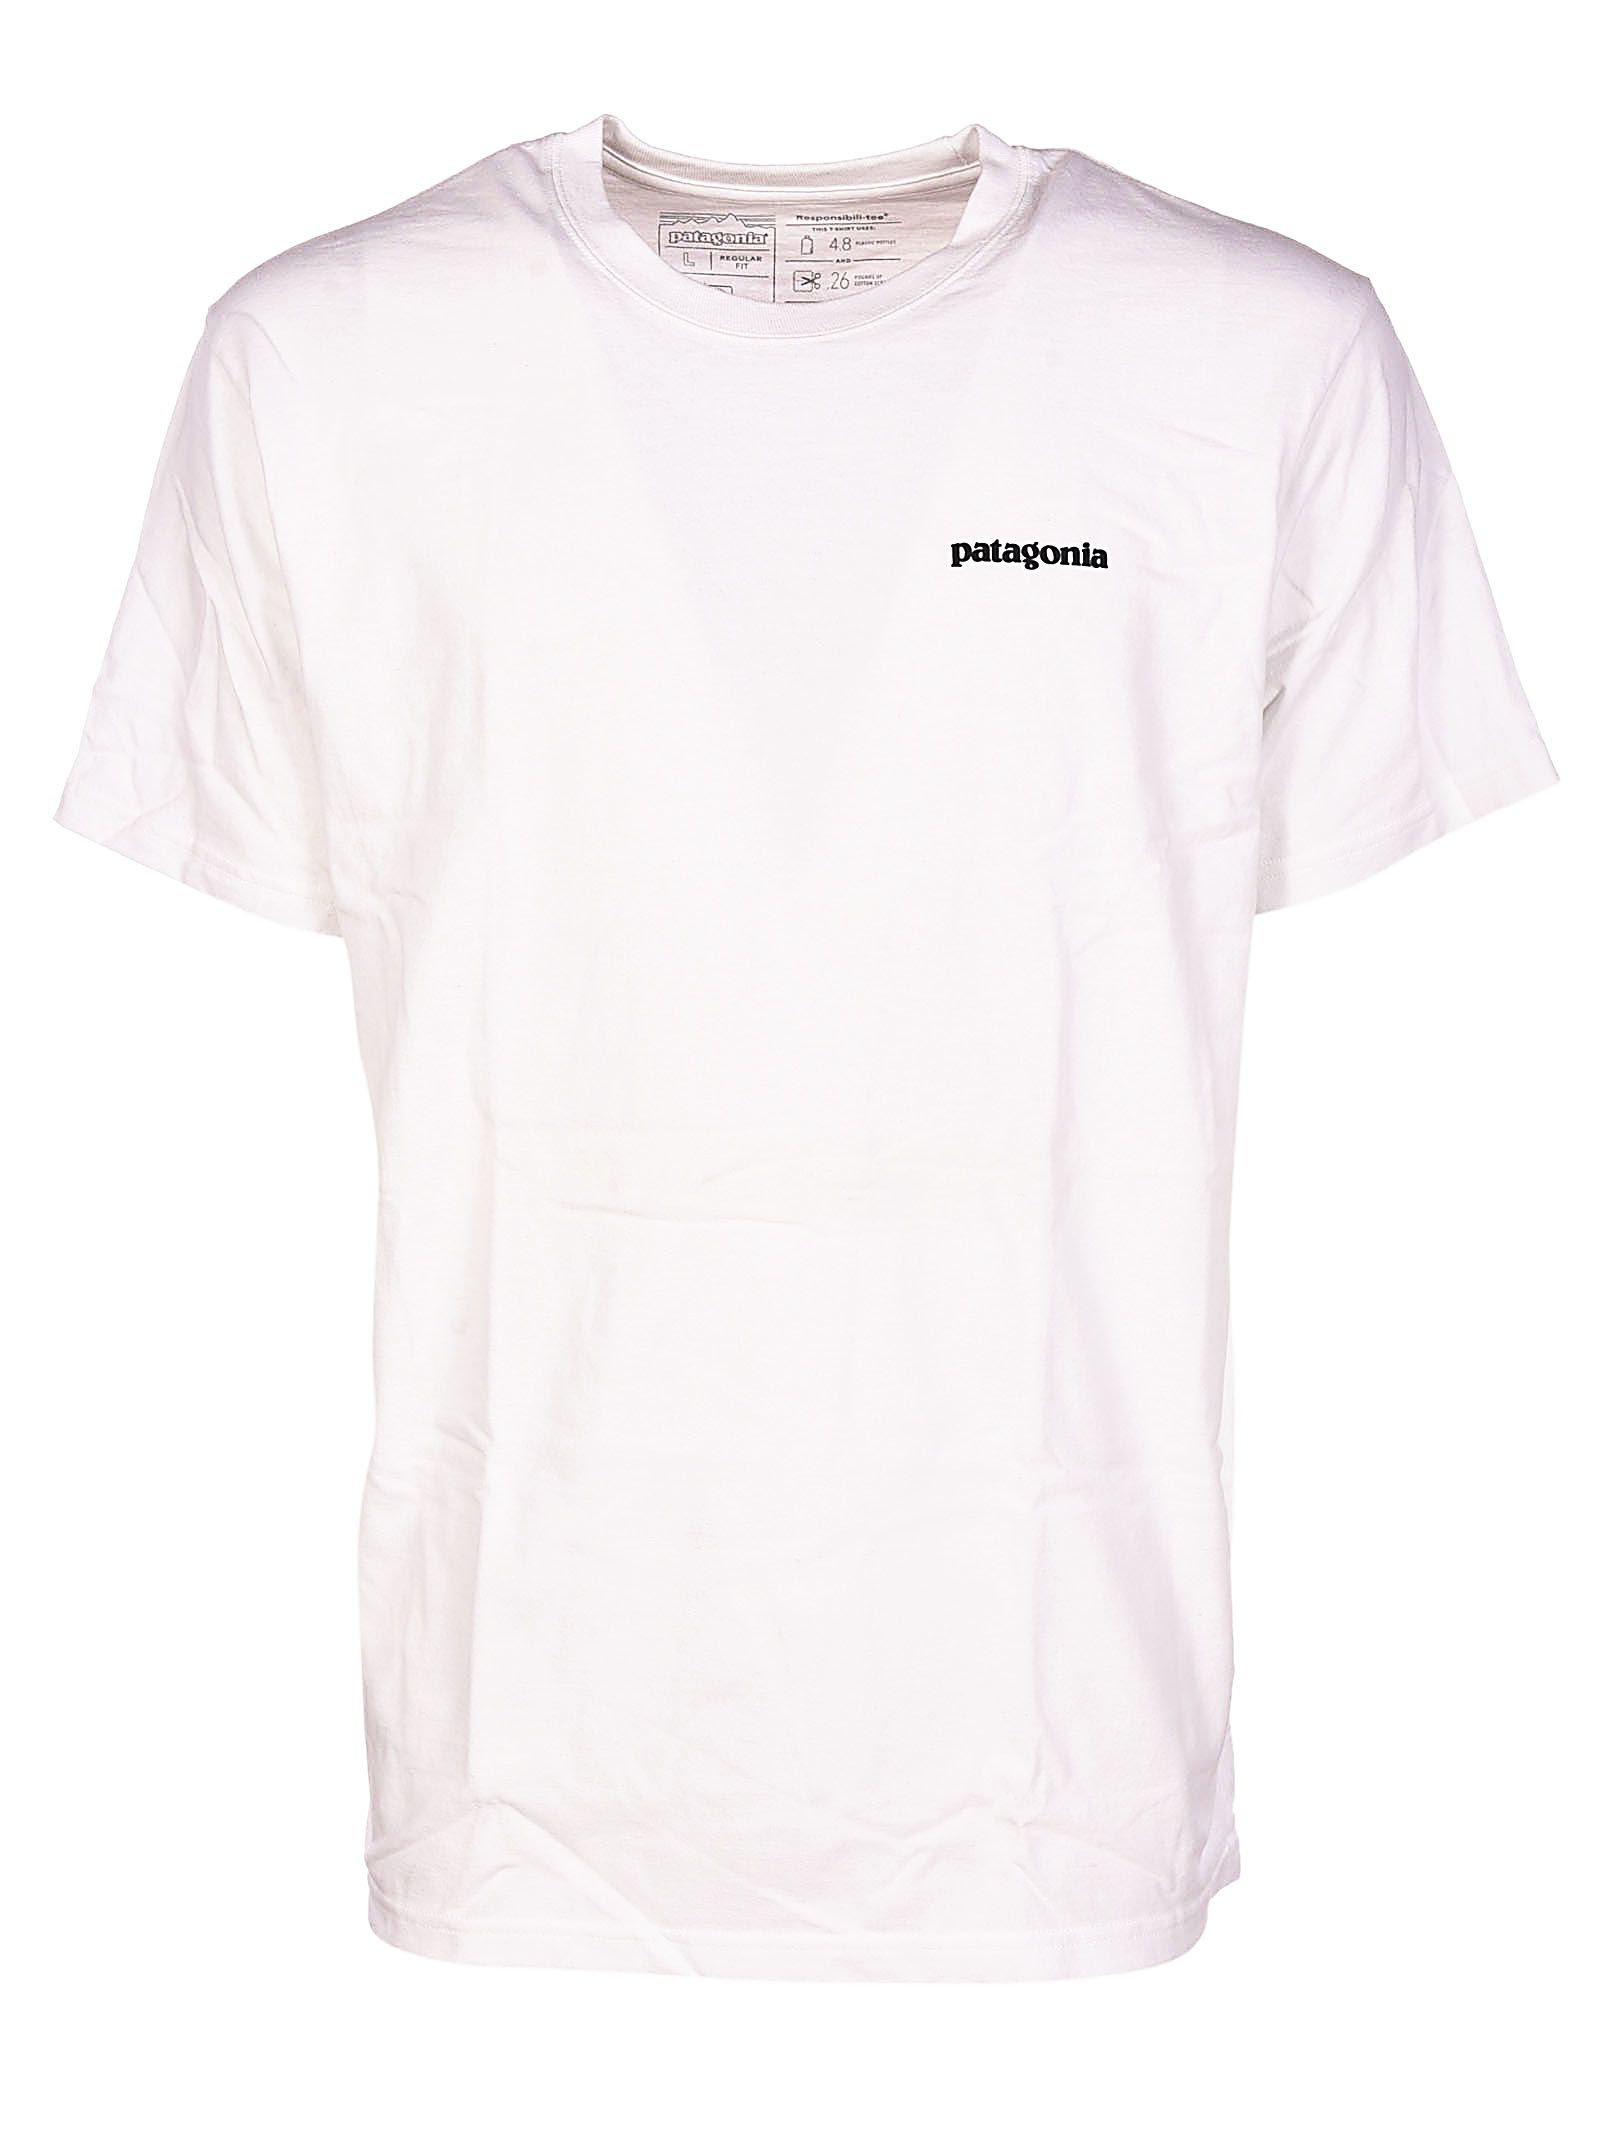 FITZ ROY TROUT COTTON T-SHIRT - TOPWEAR - T-shirts Patagonia Buy For Sale With Paypal Cheap Price Online For Sale qToJJO9yzc